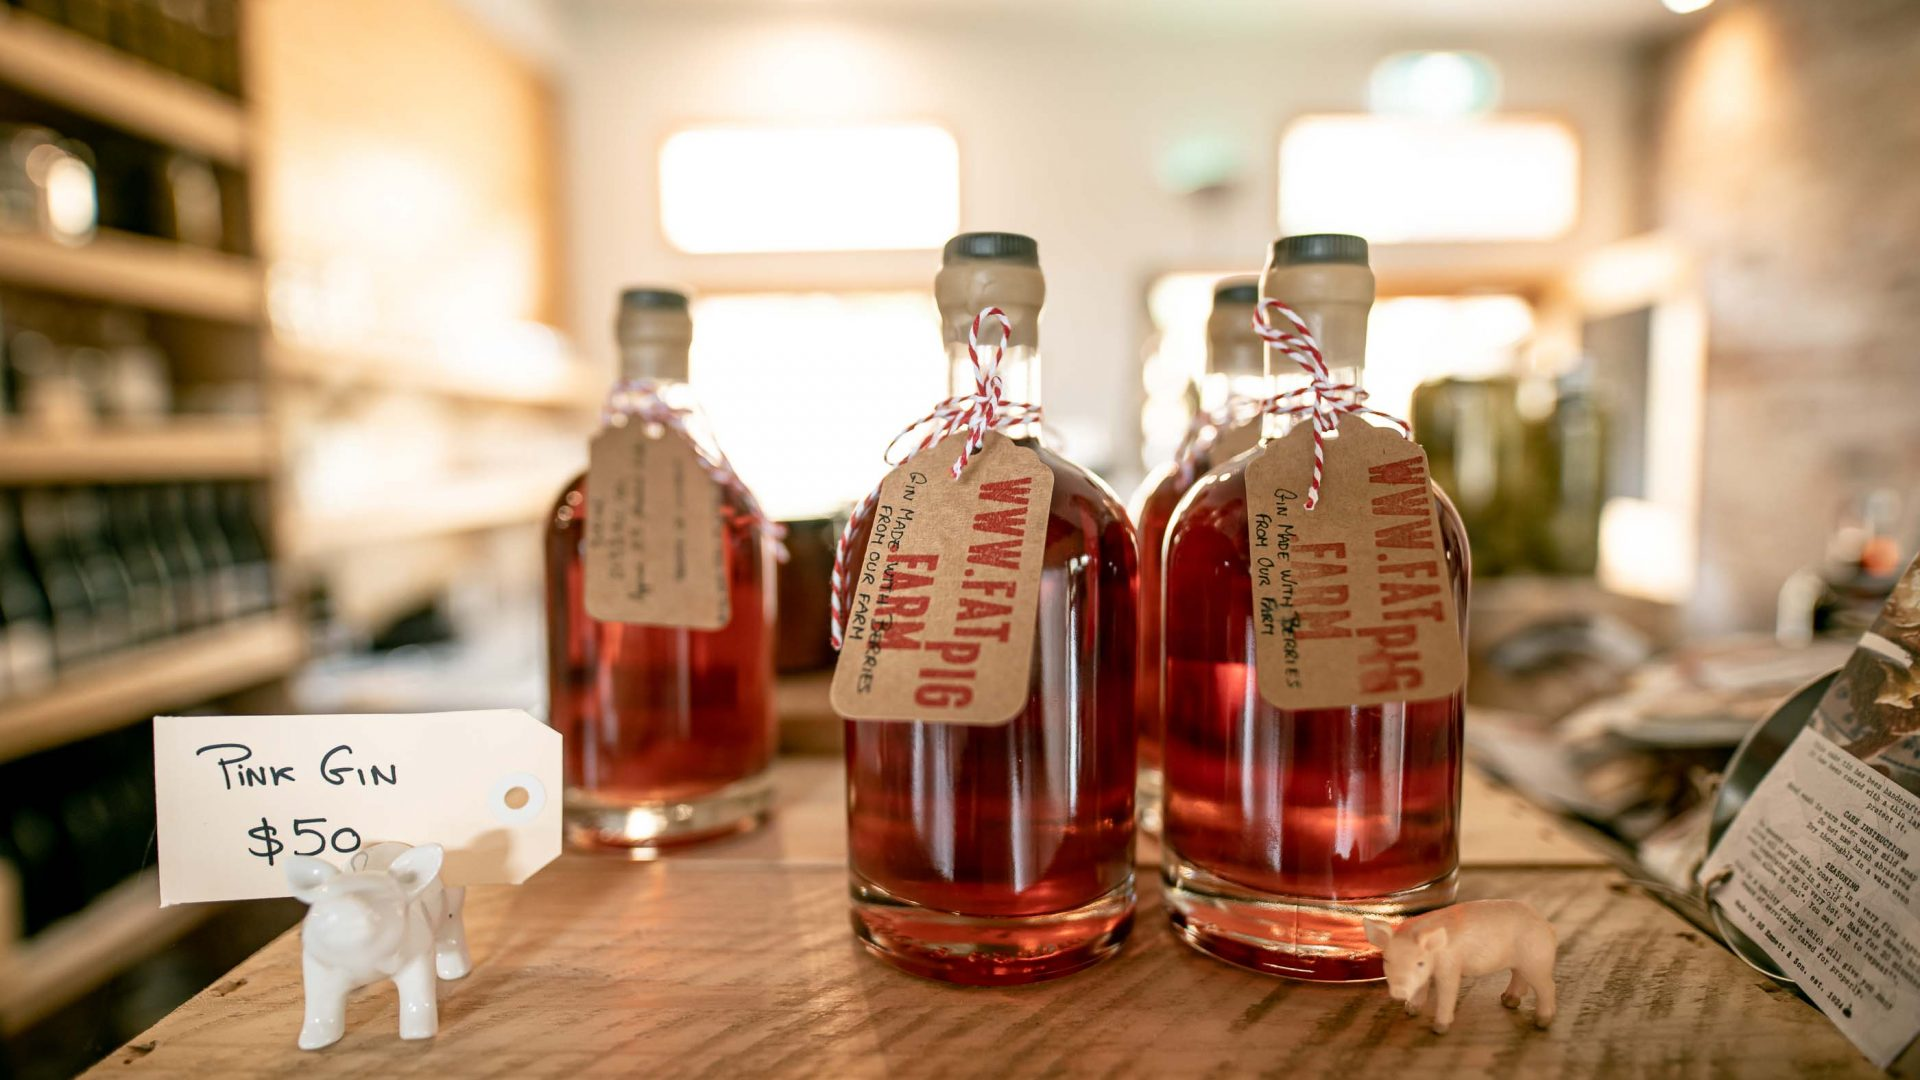 Bottles of pink coloured gin for sale.